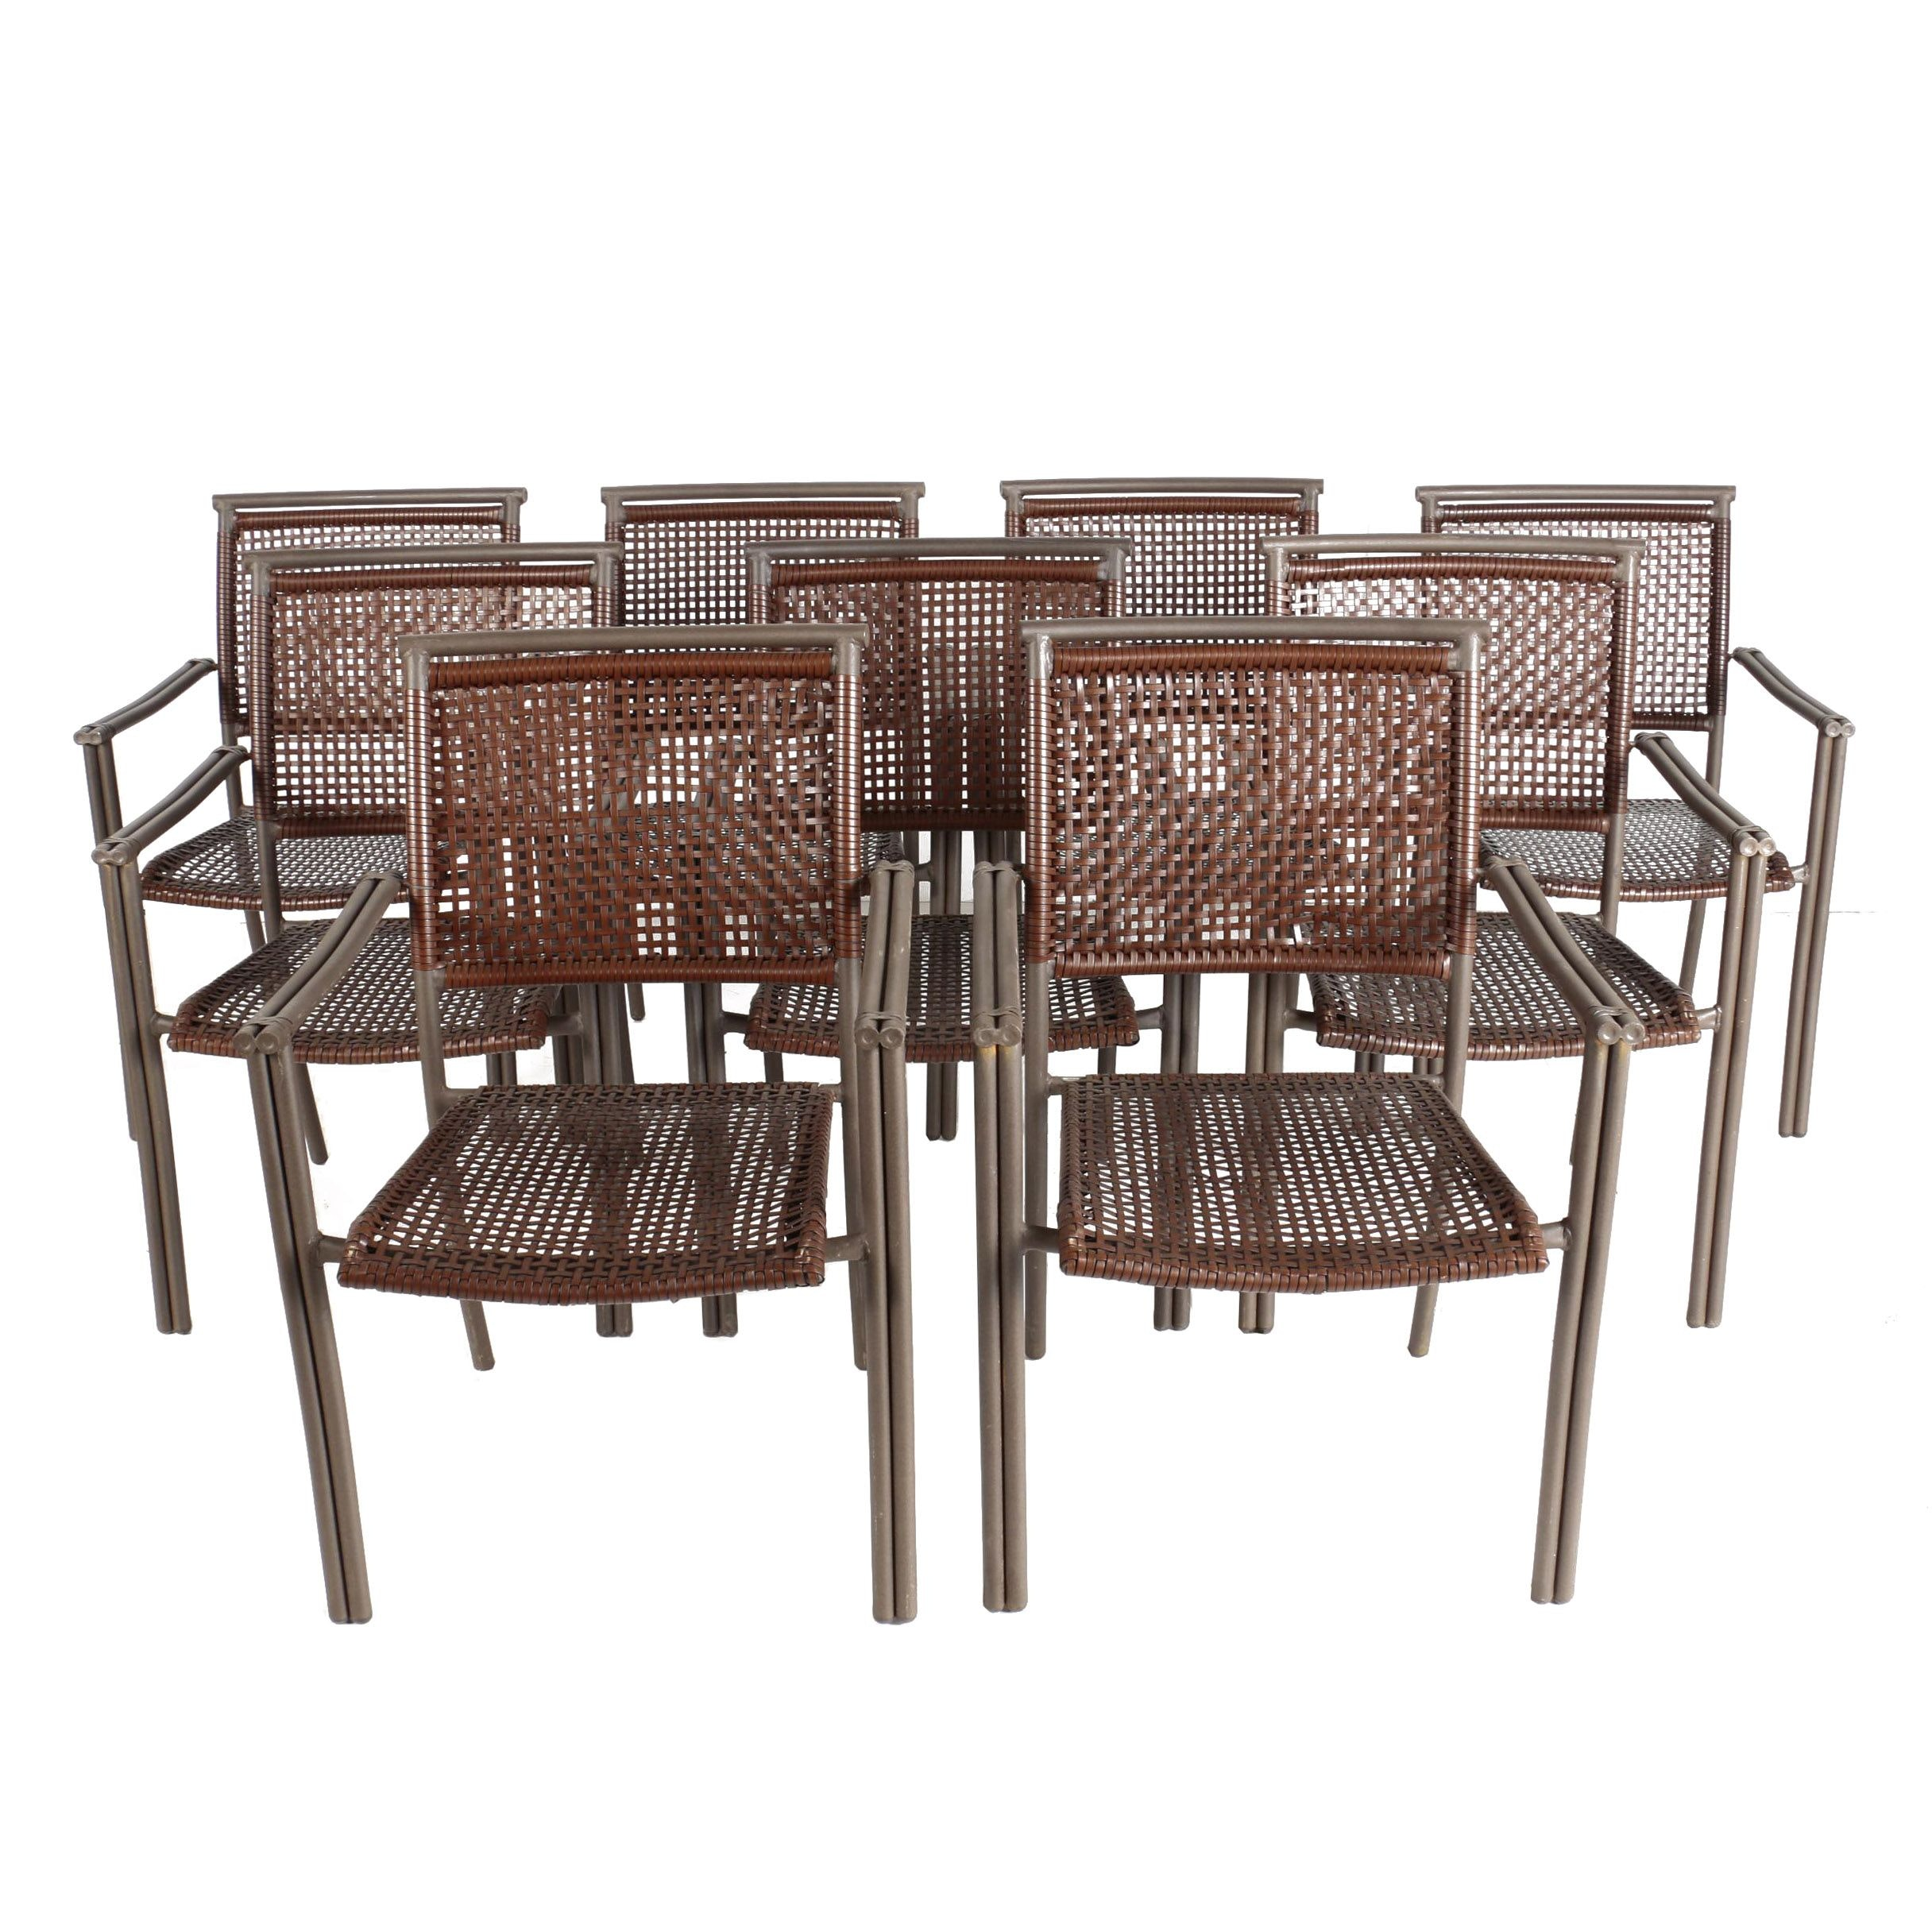 Nine Woven Stacking Patio Chairs